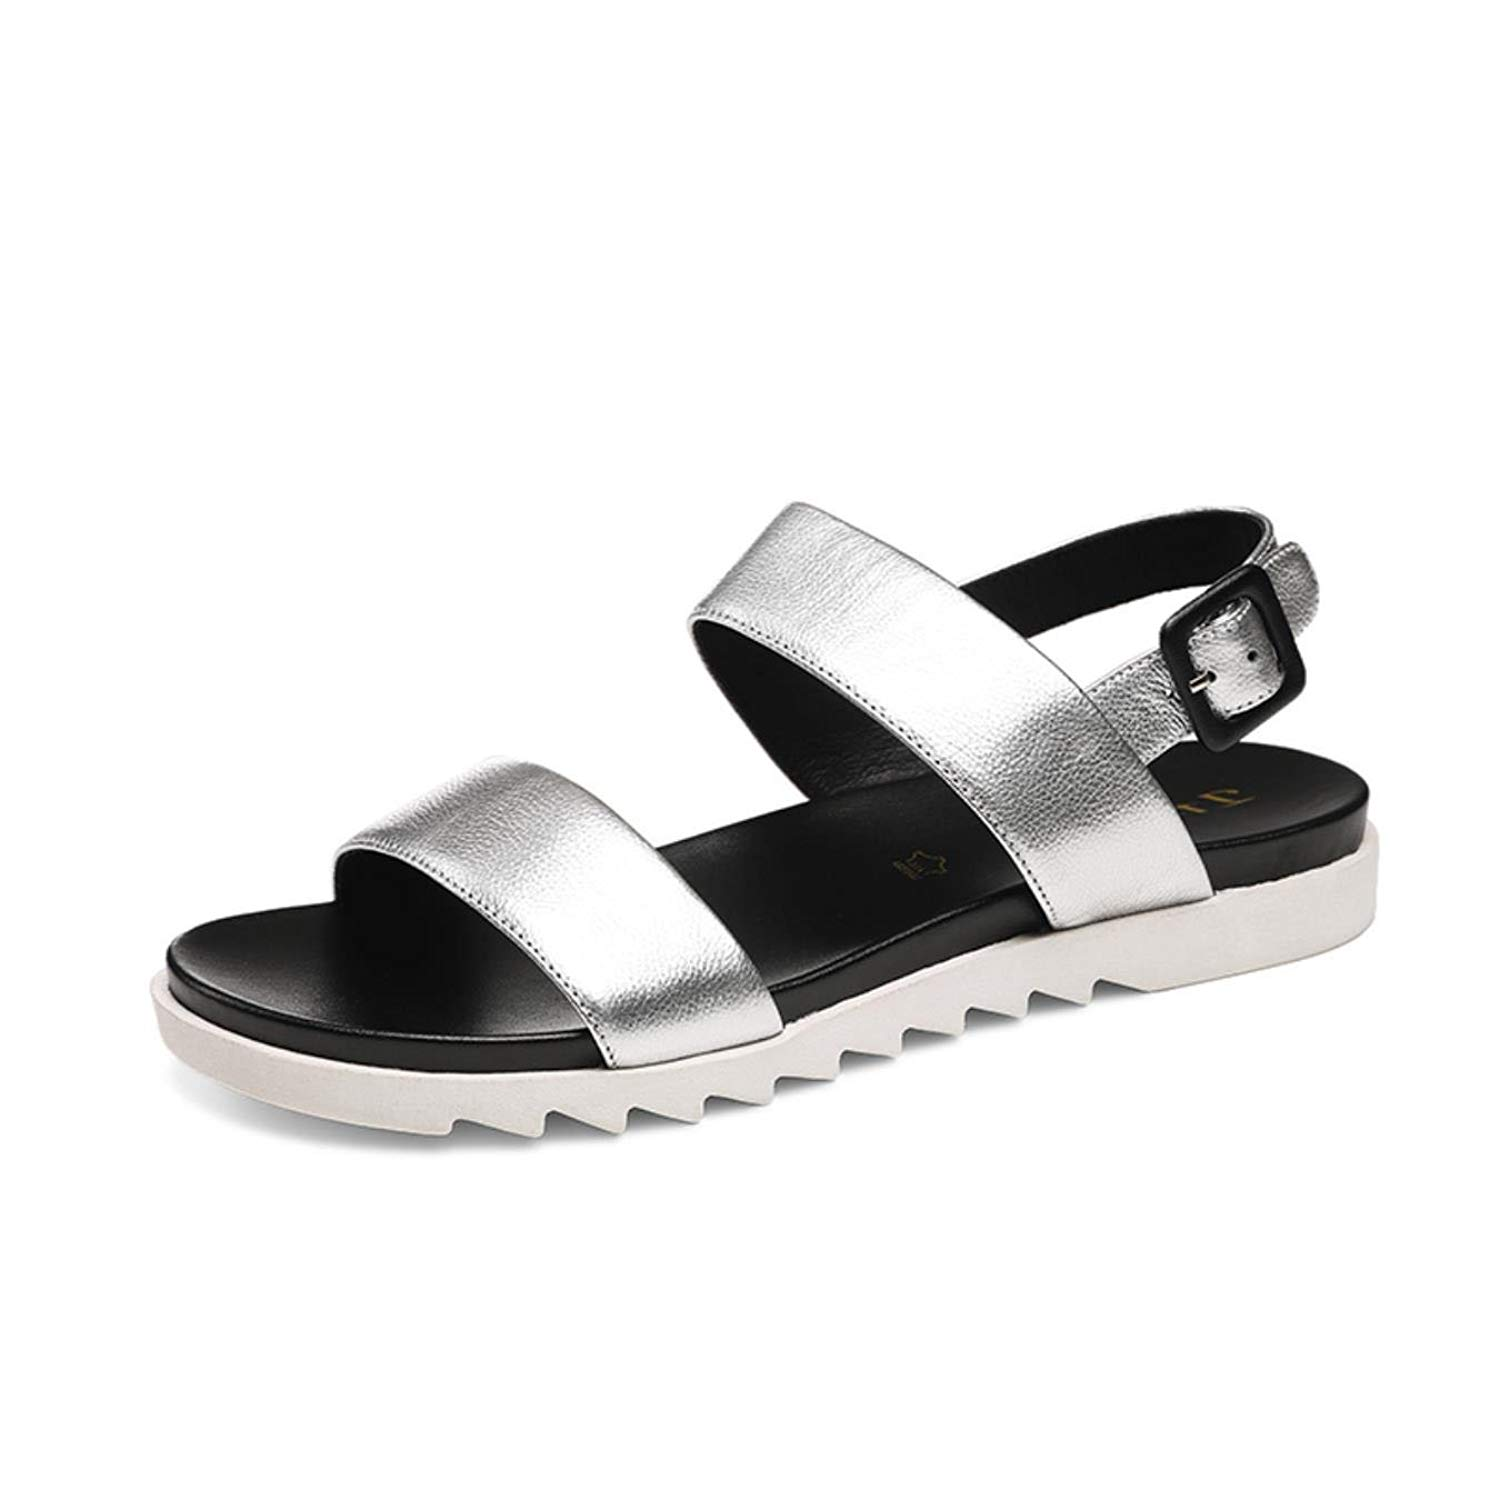 Flat Sandals Silver Women Casual Comfortable Soft Leather Buckle Back Strap Sandalias New Summer Russian Size